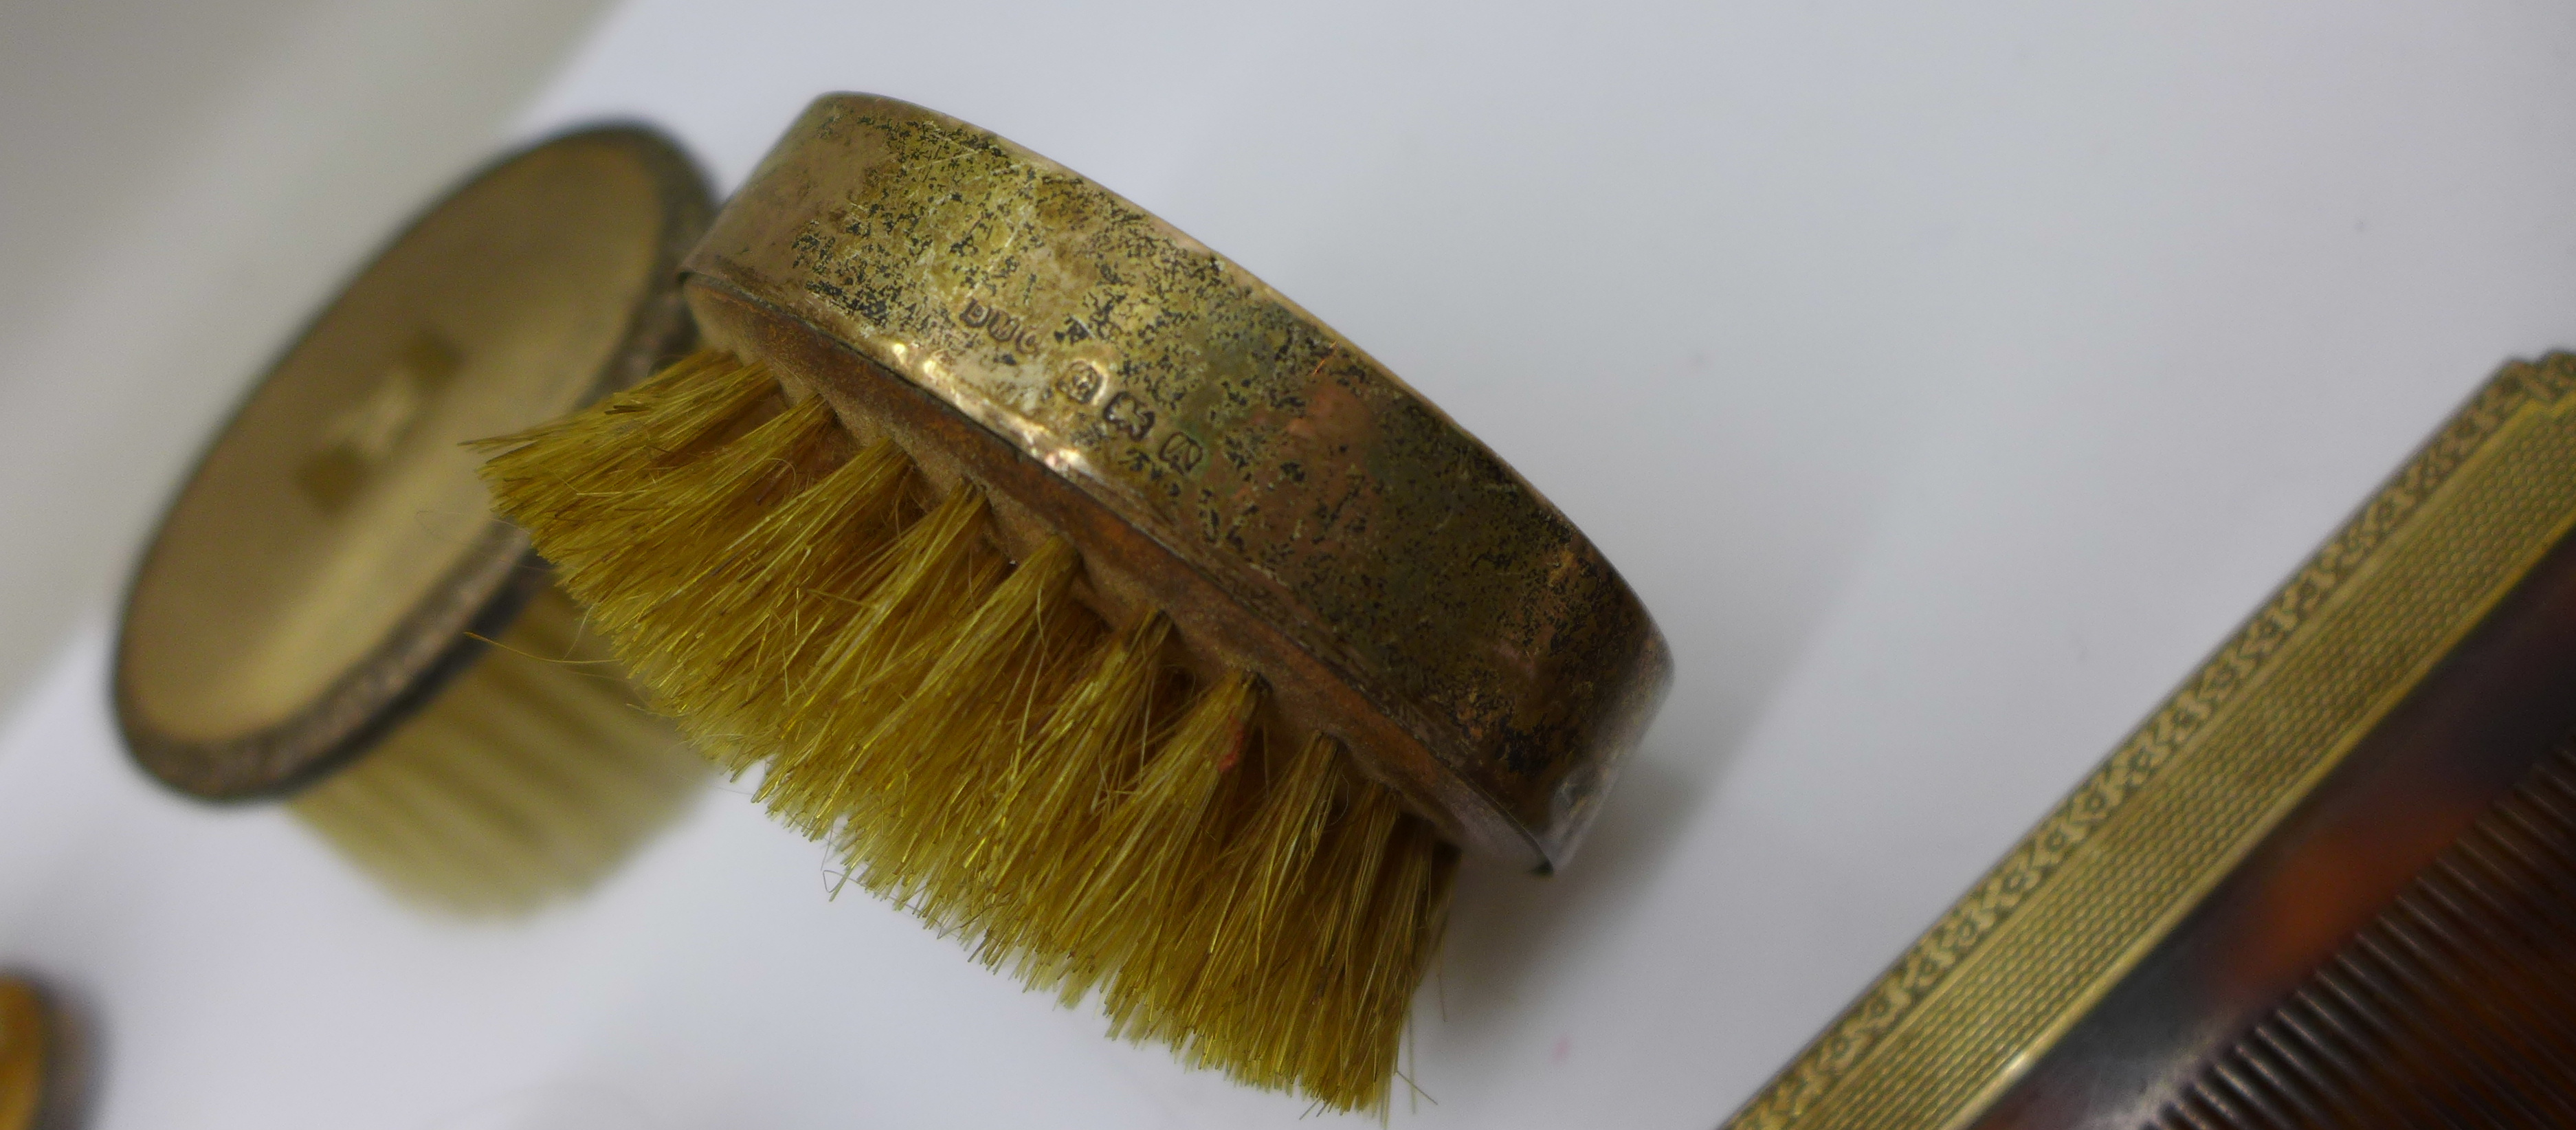 Silver brushes (two cased), comb and a hand mirror - Image 7 of 9